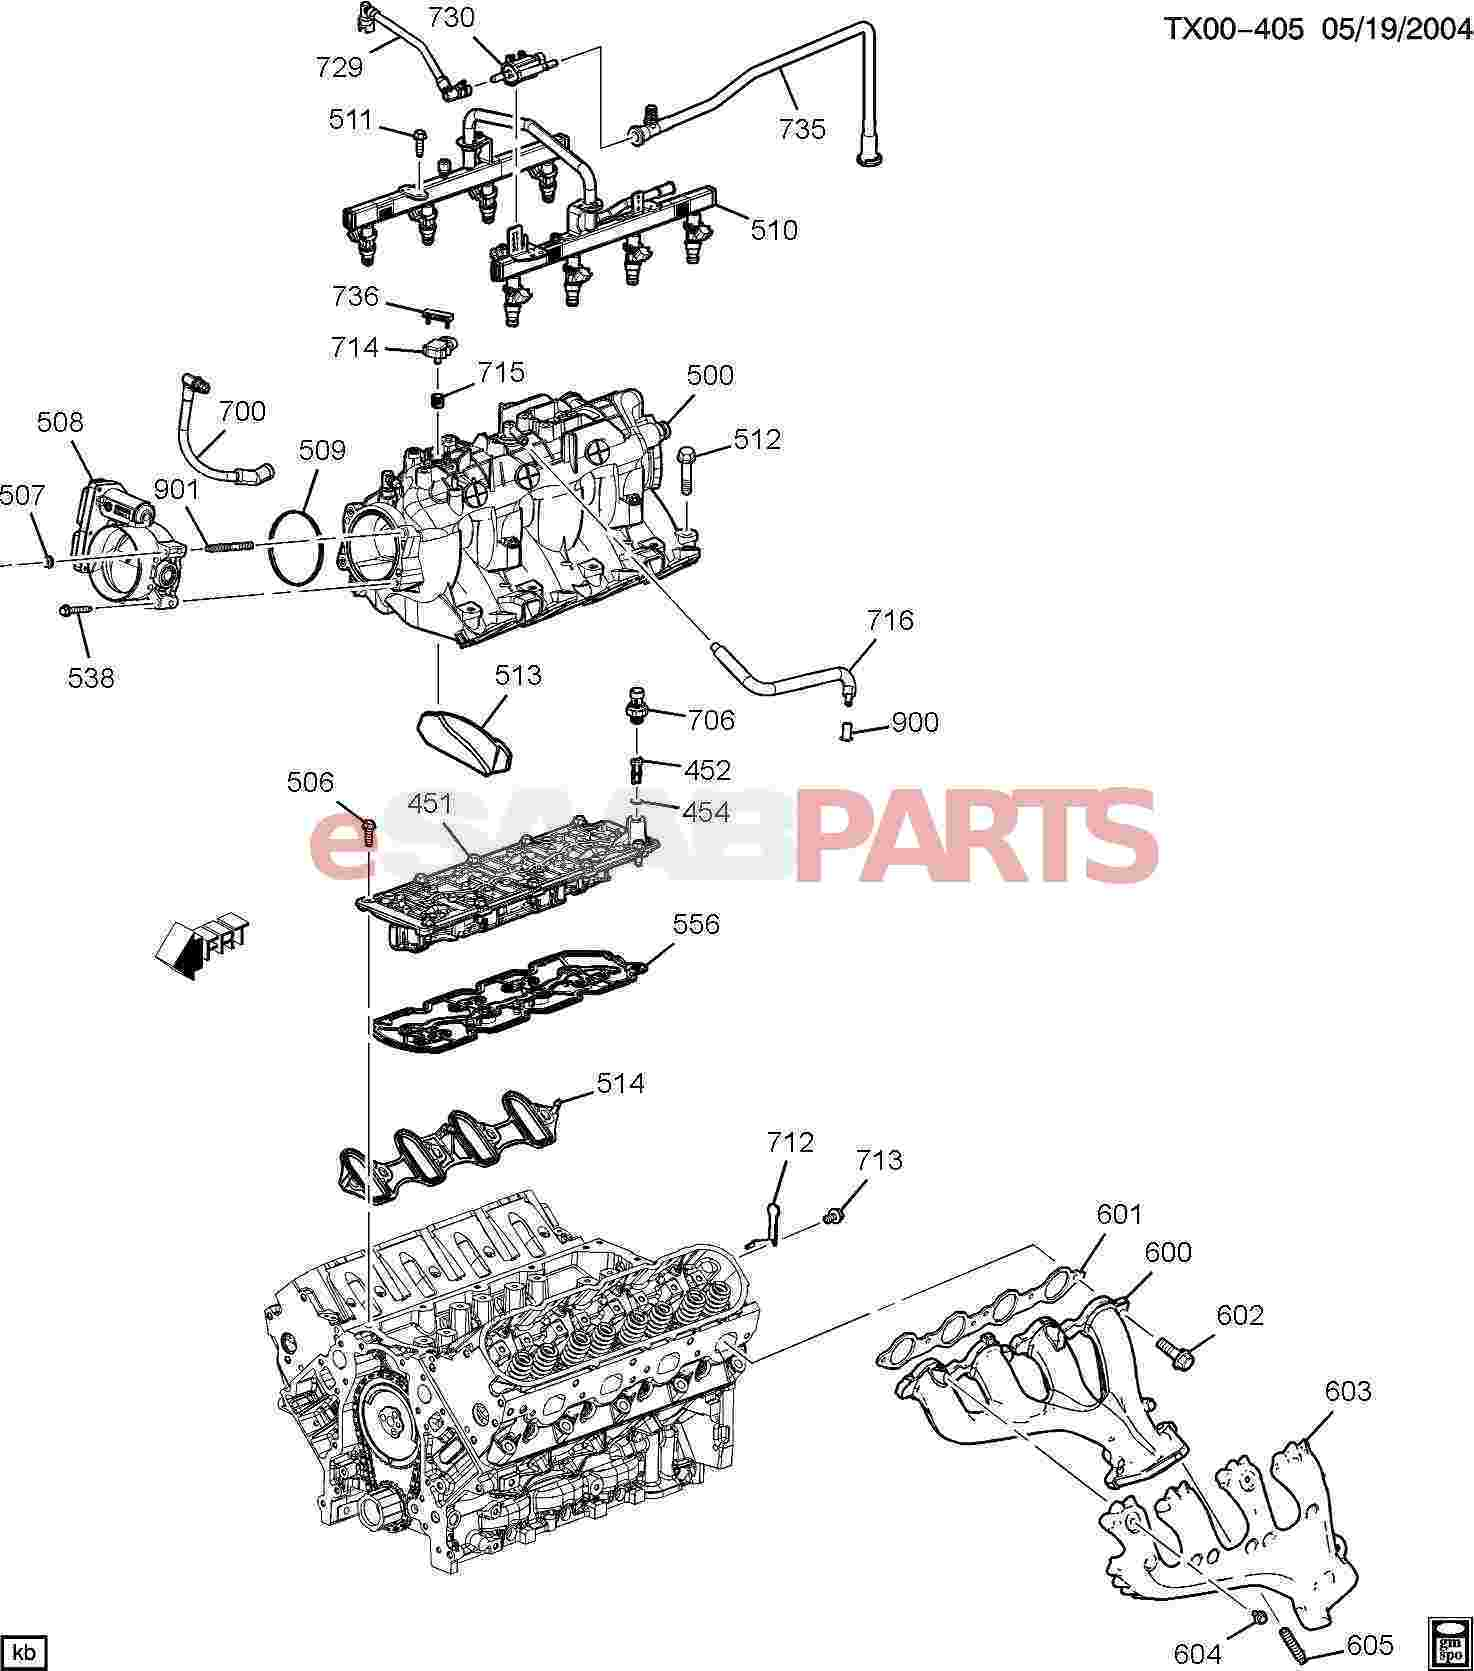 eSaabParts.com - Saab 9-7x > Engine Parts > Engine Internal 5.3M > Engine  ASM-5.3L V8 Part 5 Manifold & Fuel Related Parts (5.3M)